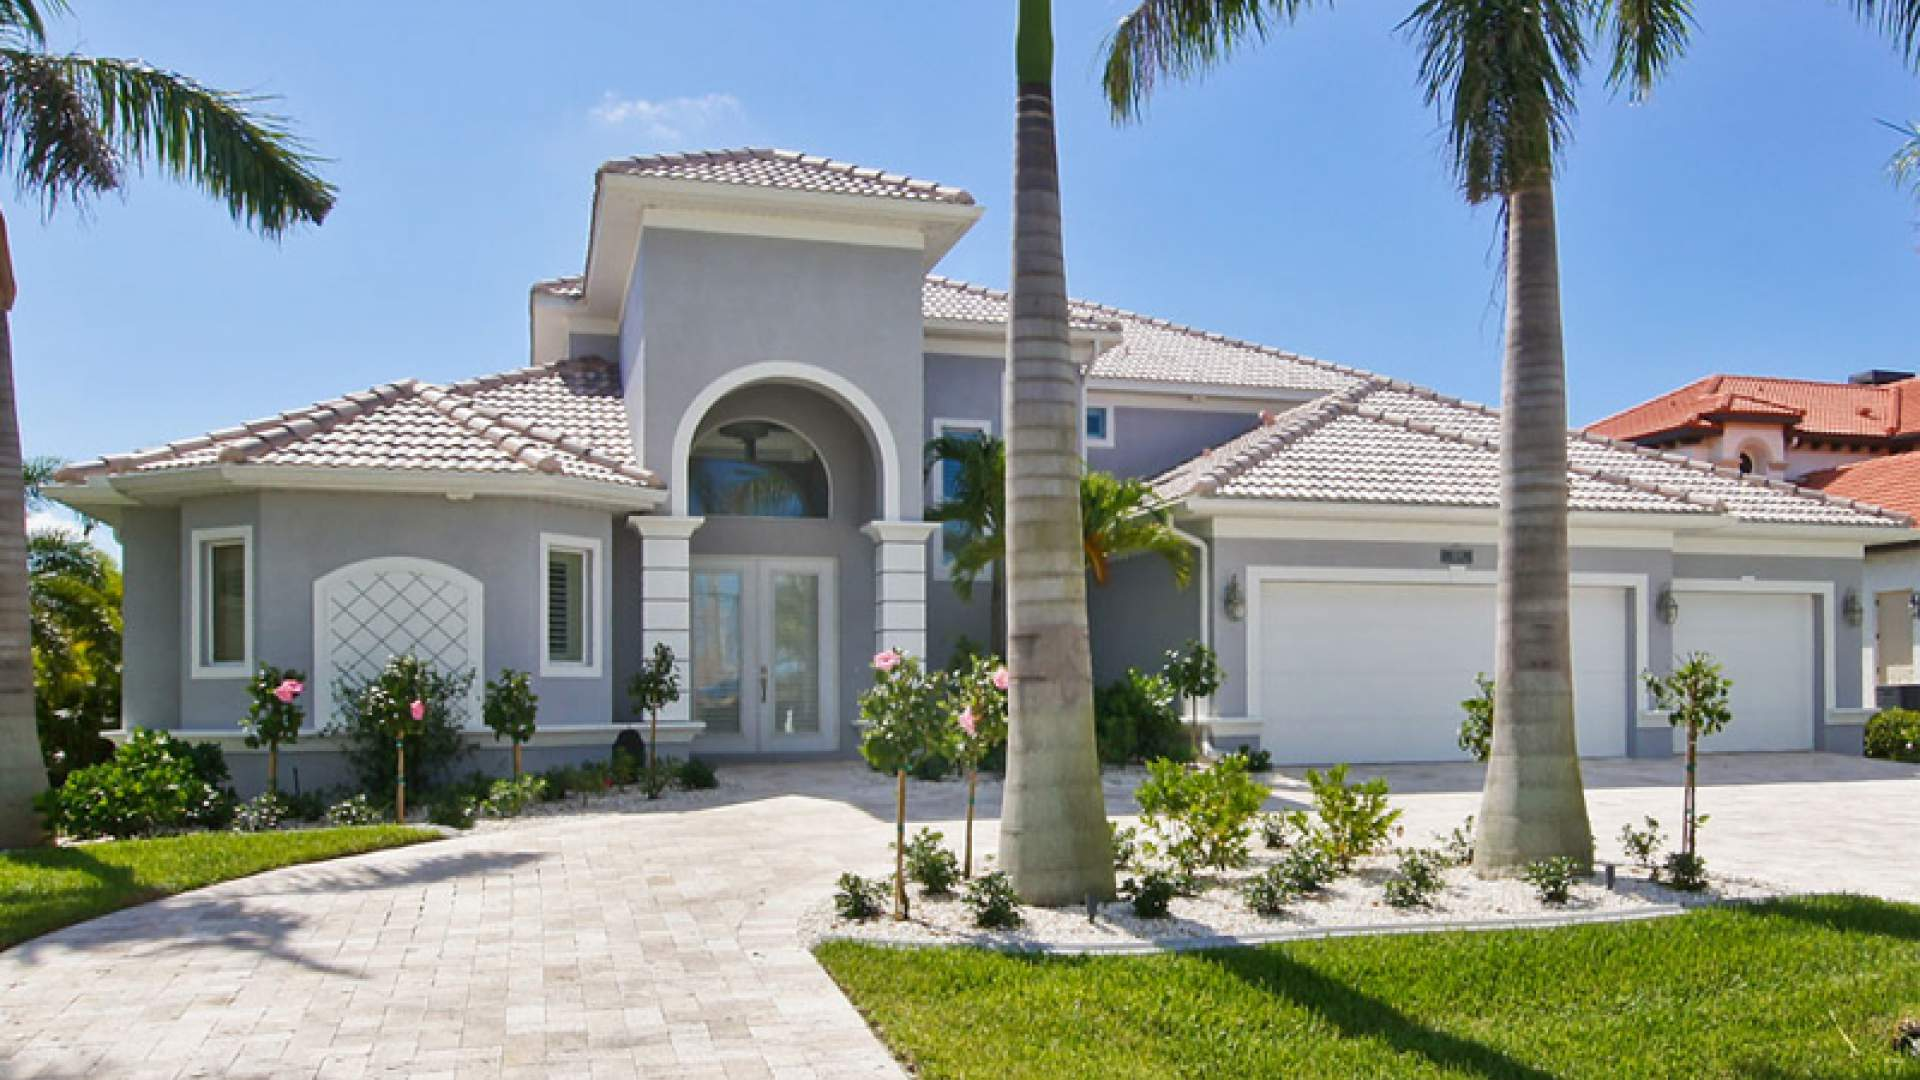 Villas villa royal in cape coral florida for Villa royale